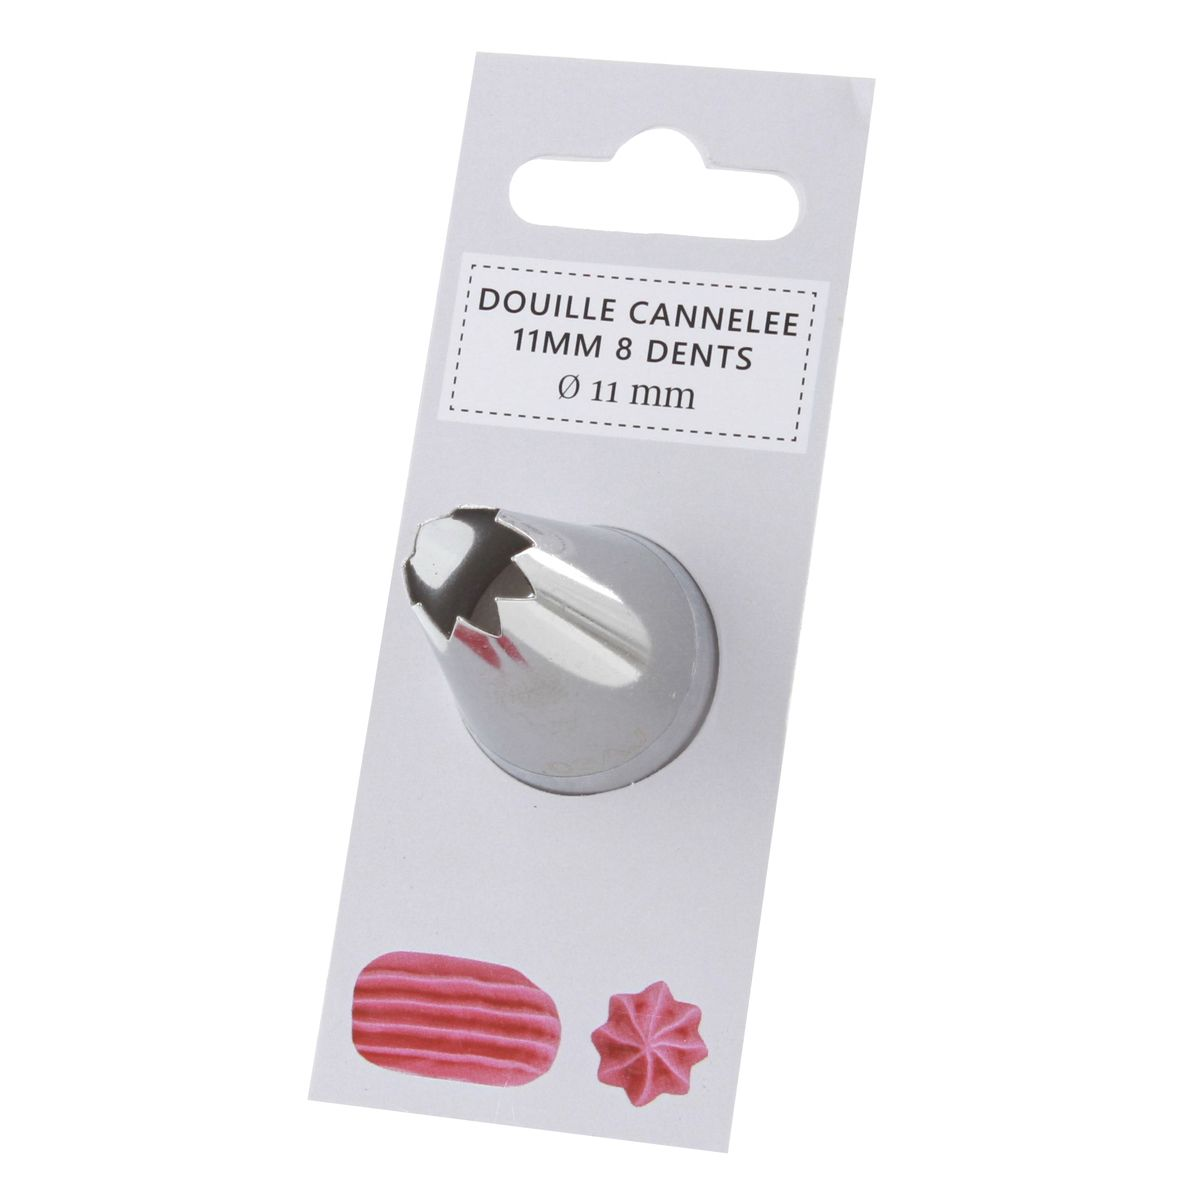 Douille cannelée 8 dents 11mm